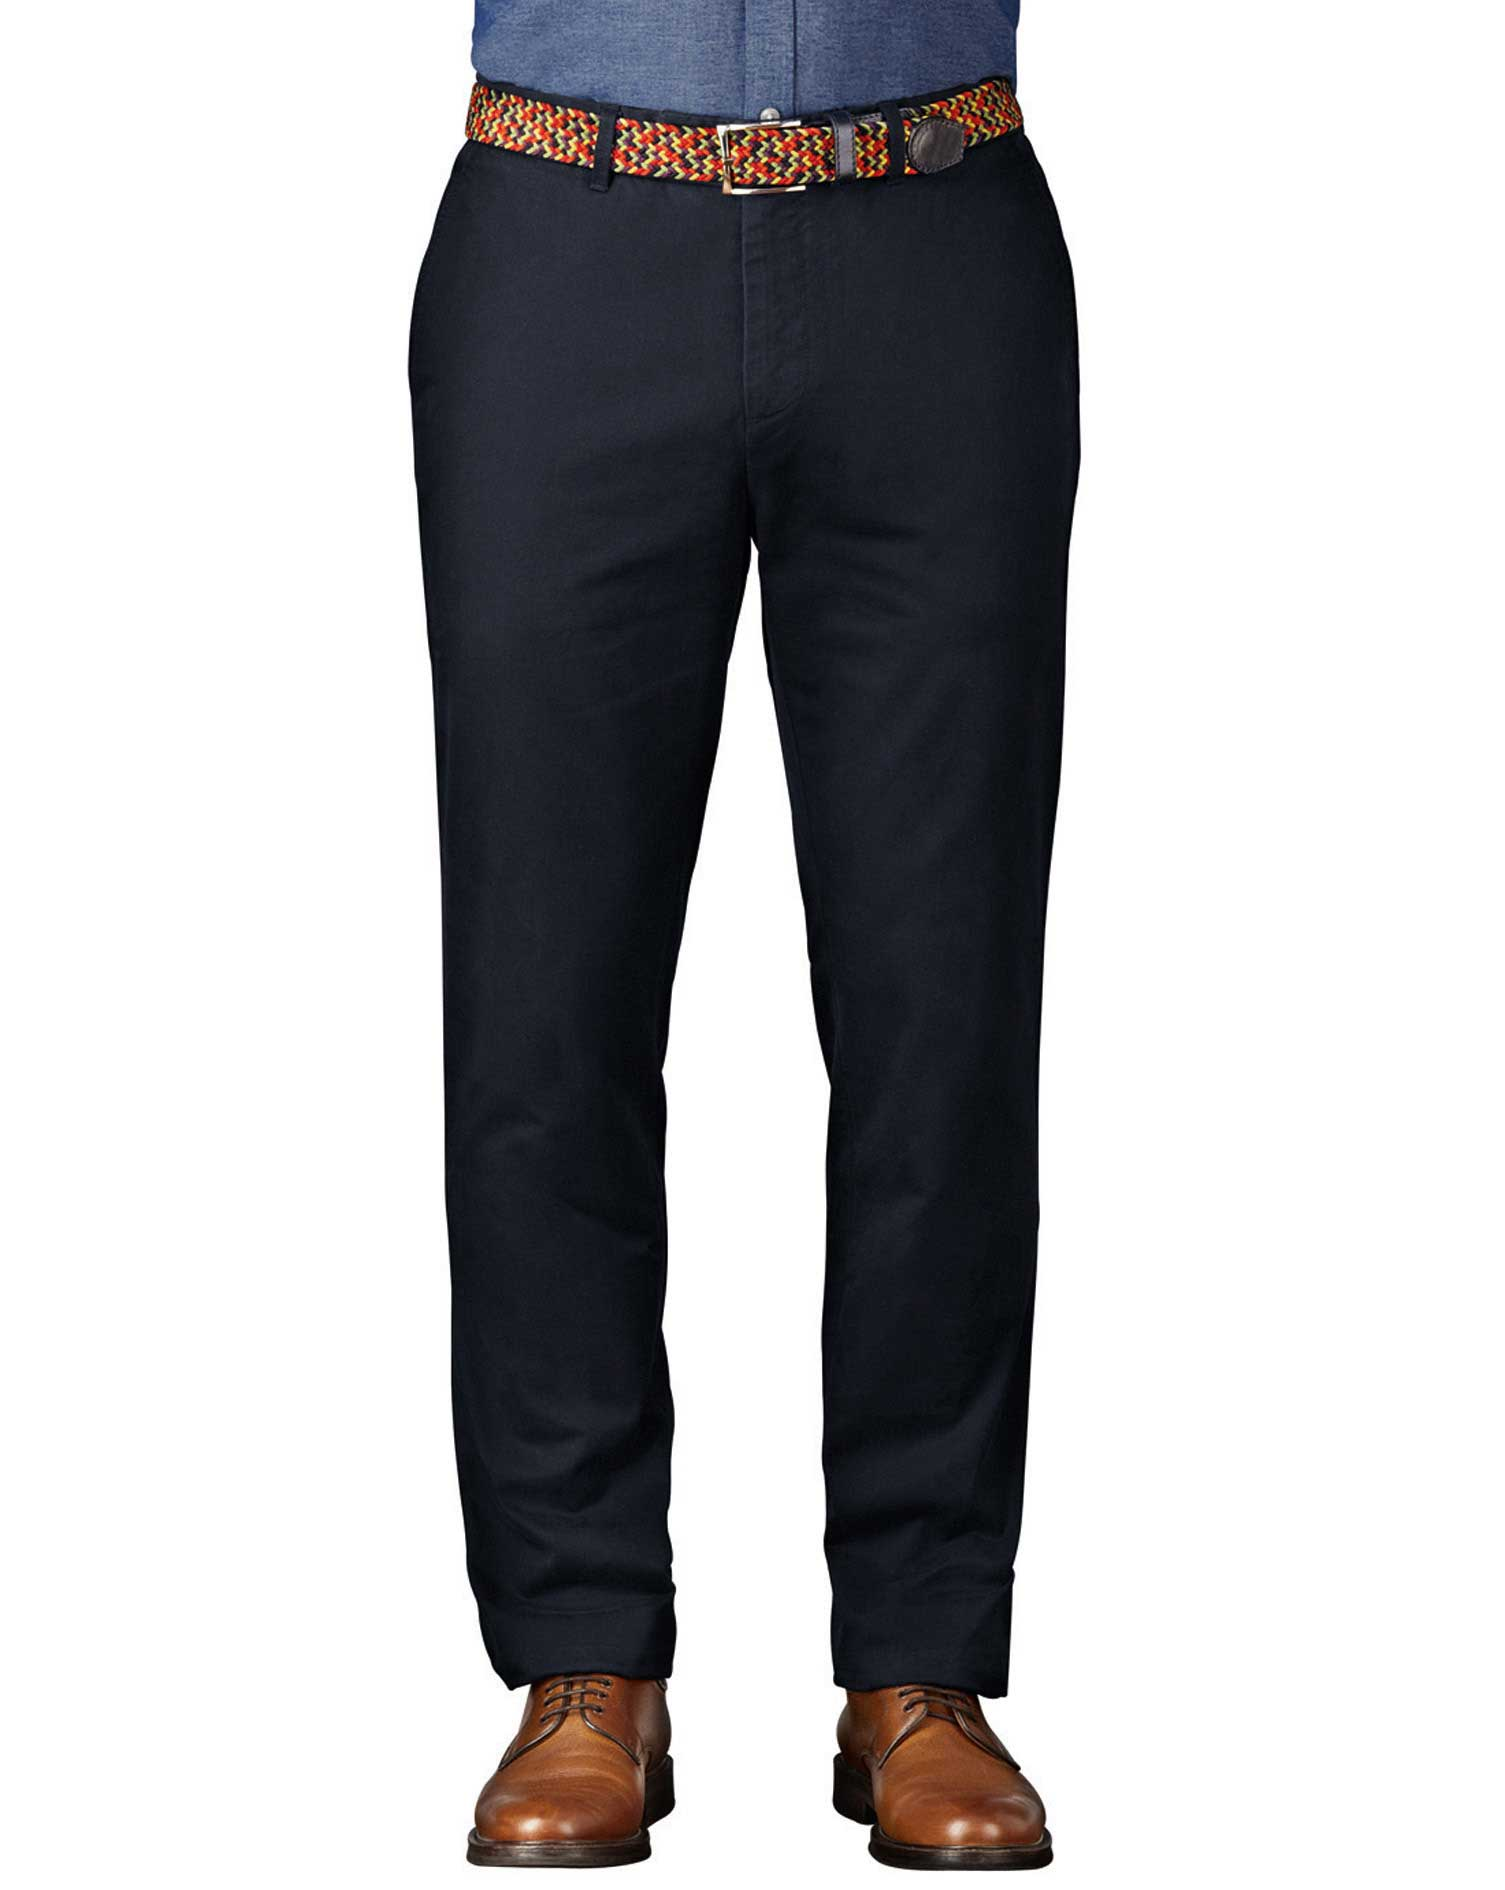 Navy Extra Slim Fit Flat Front Cotton Chino Trousers Size W38 L38 by Charles Tyrwhitt